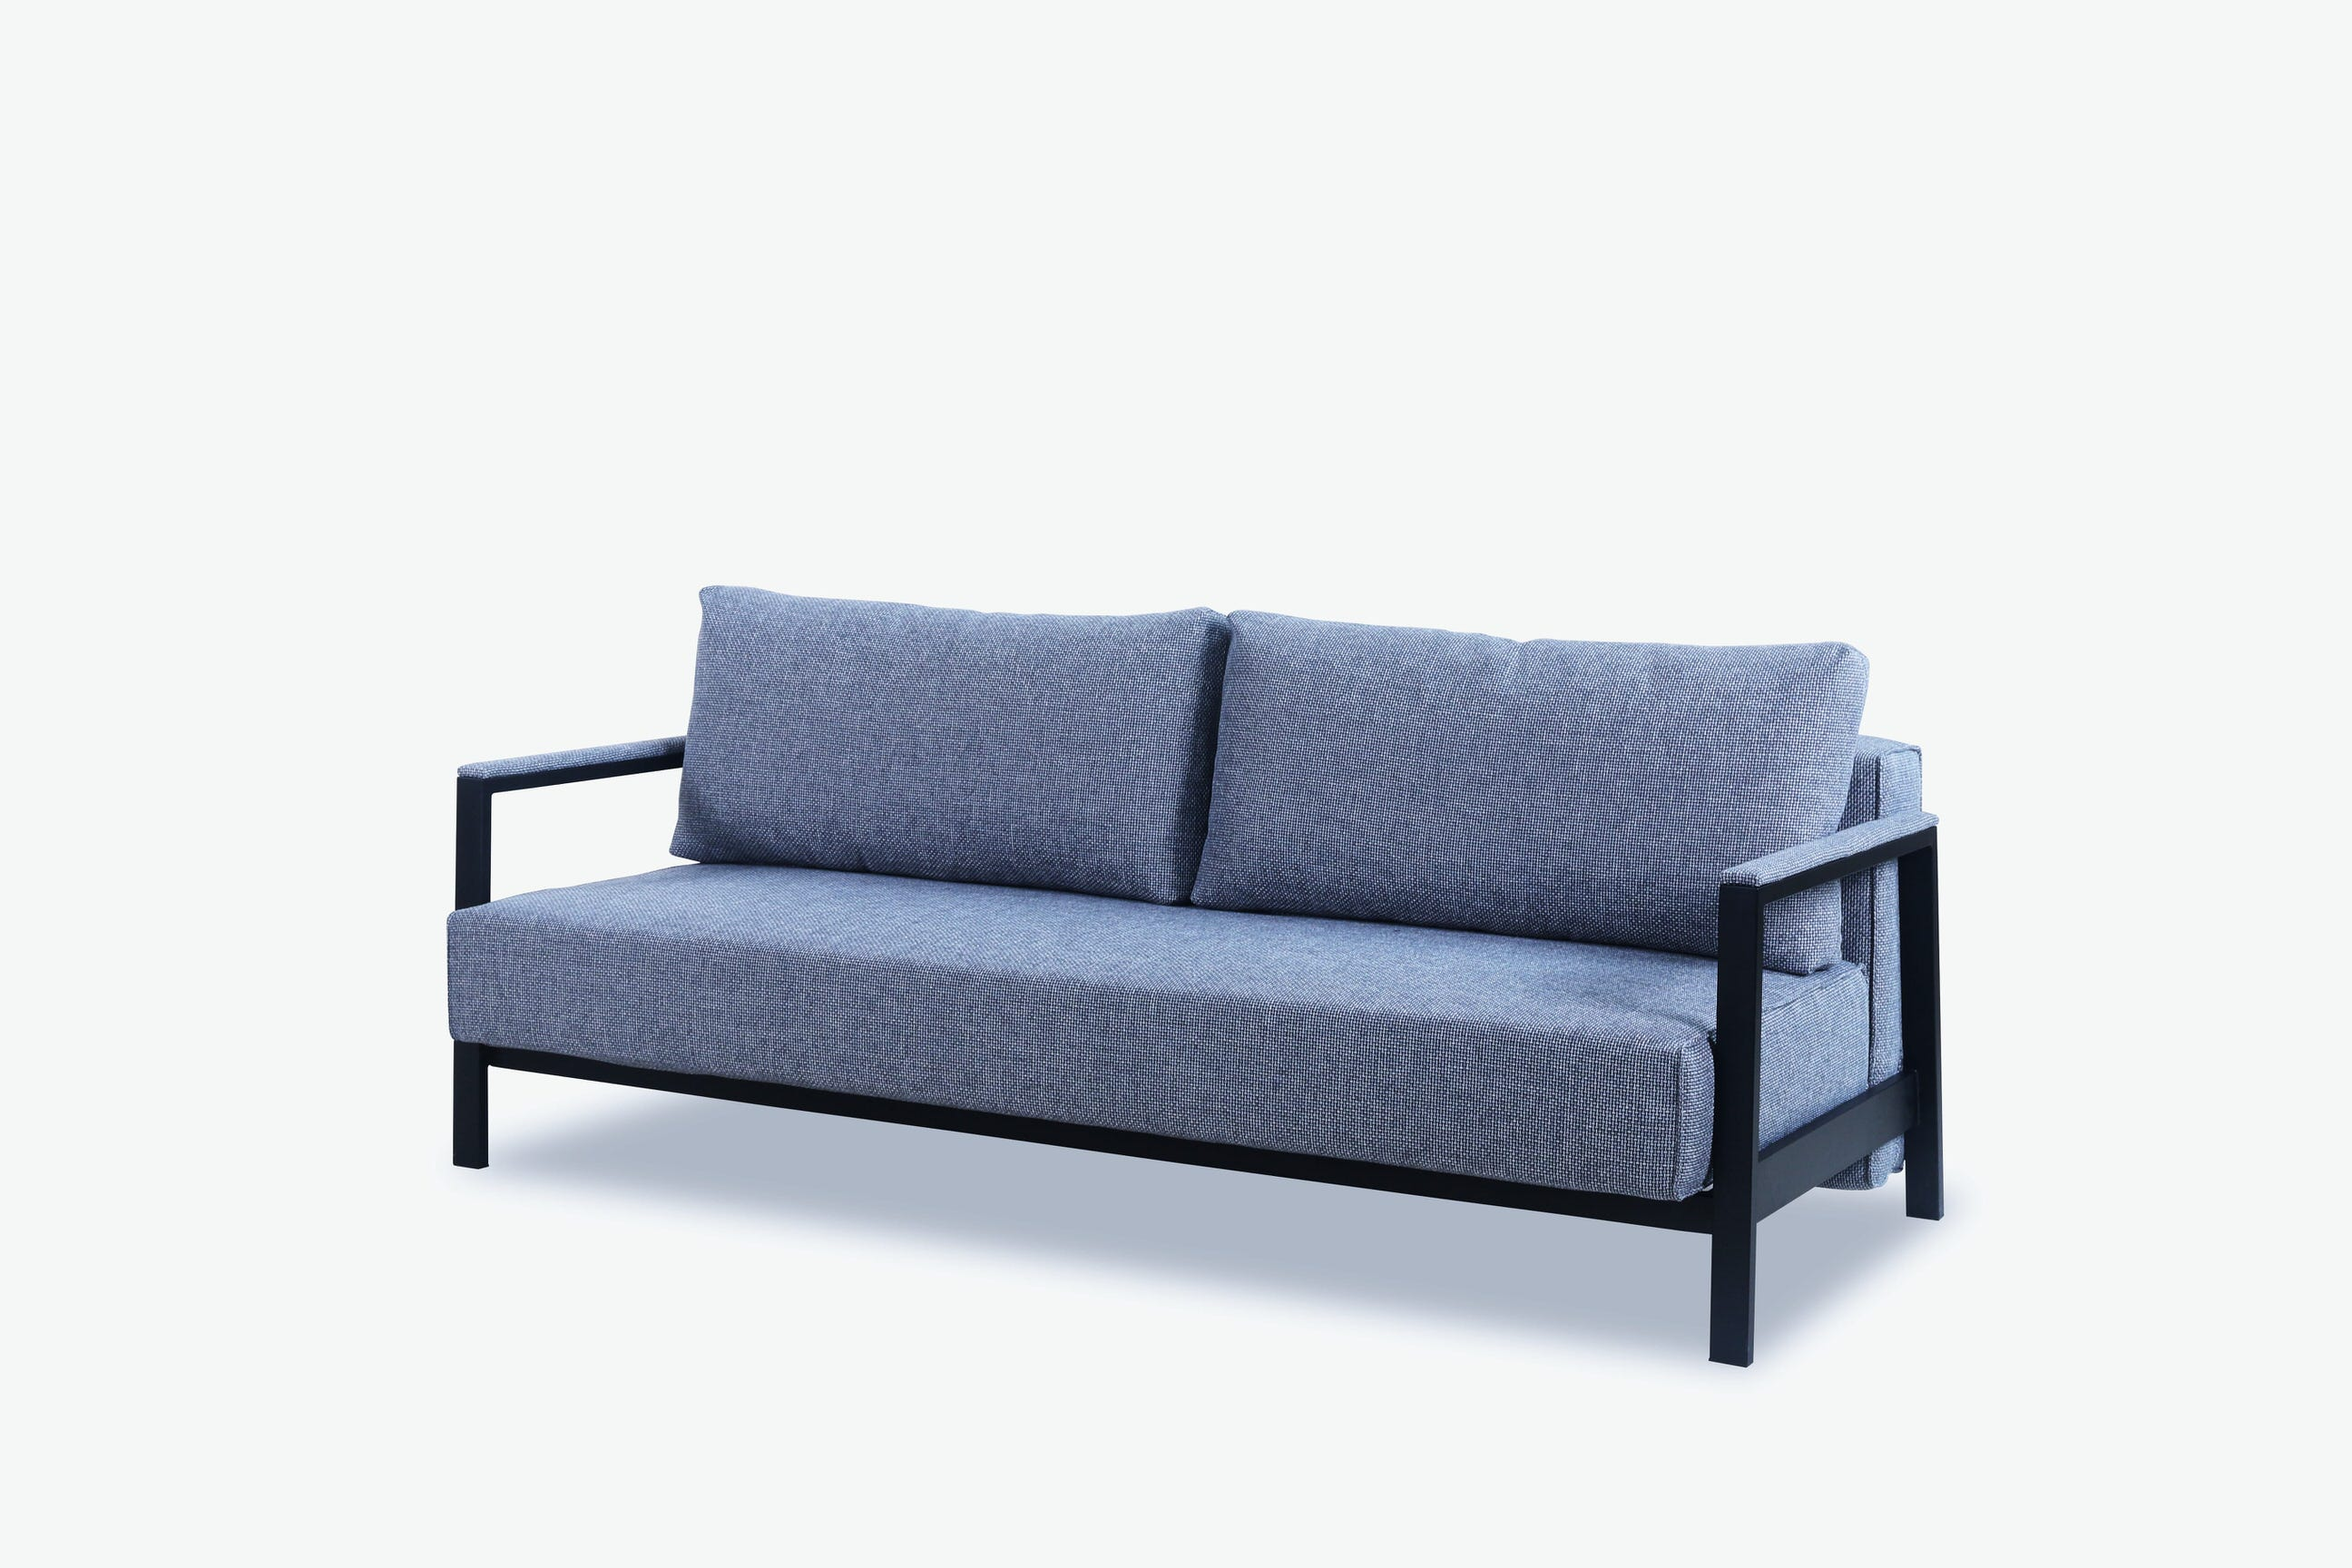 Sofa Bed 17 Gray By New Spec